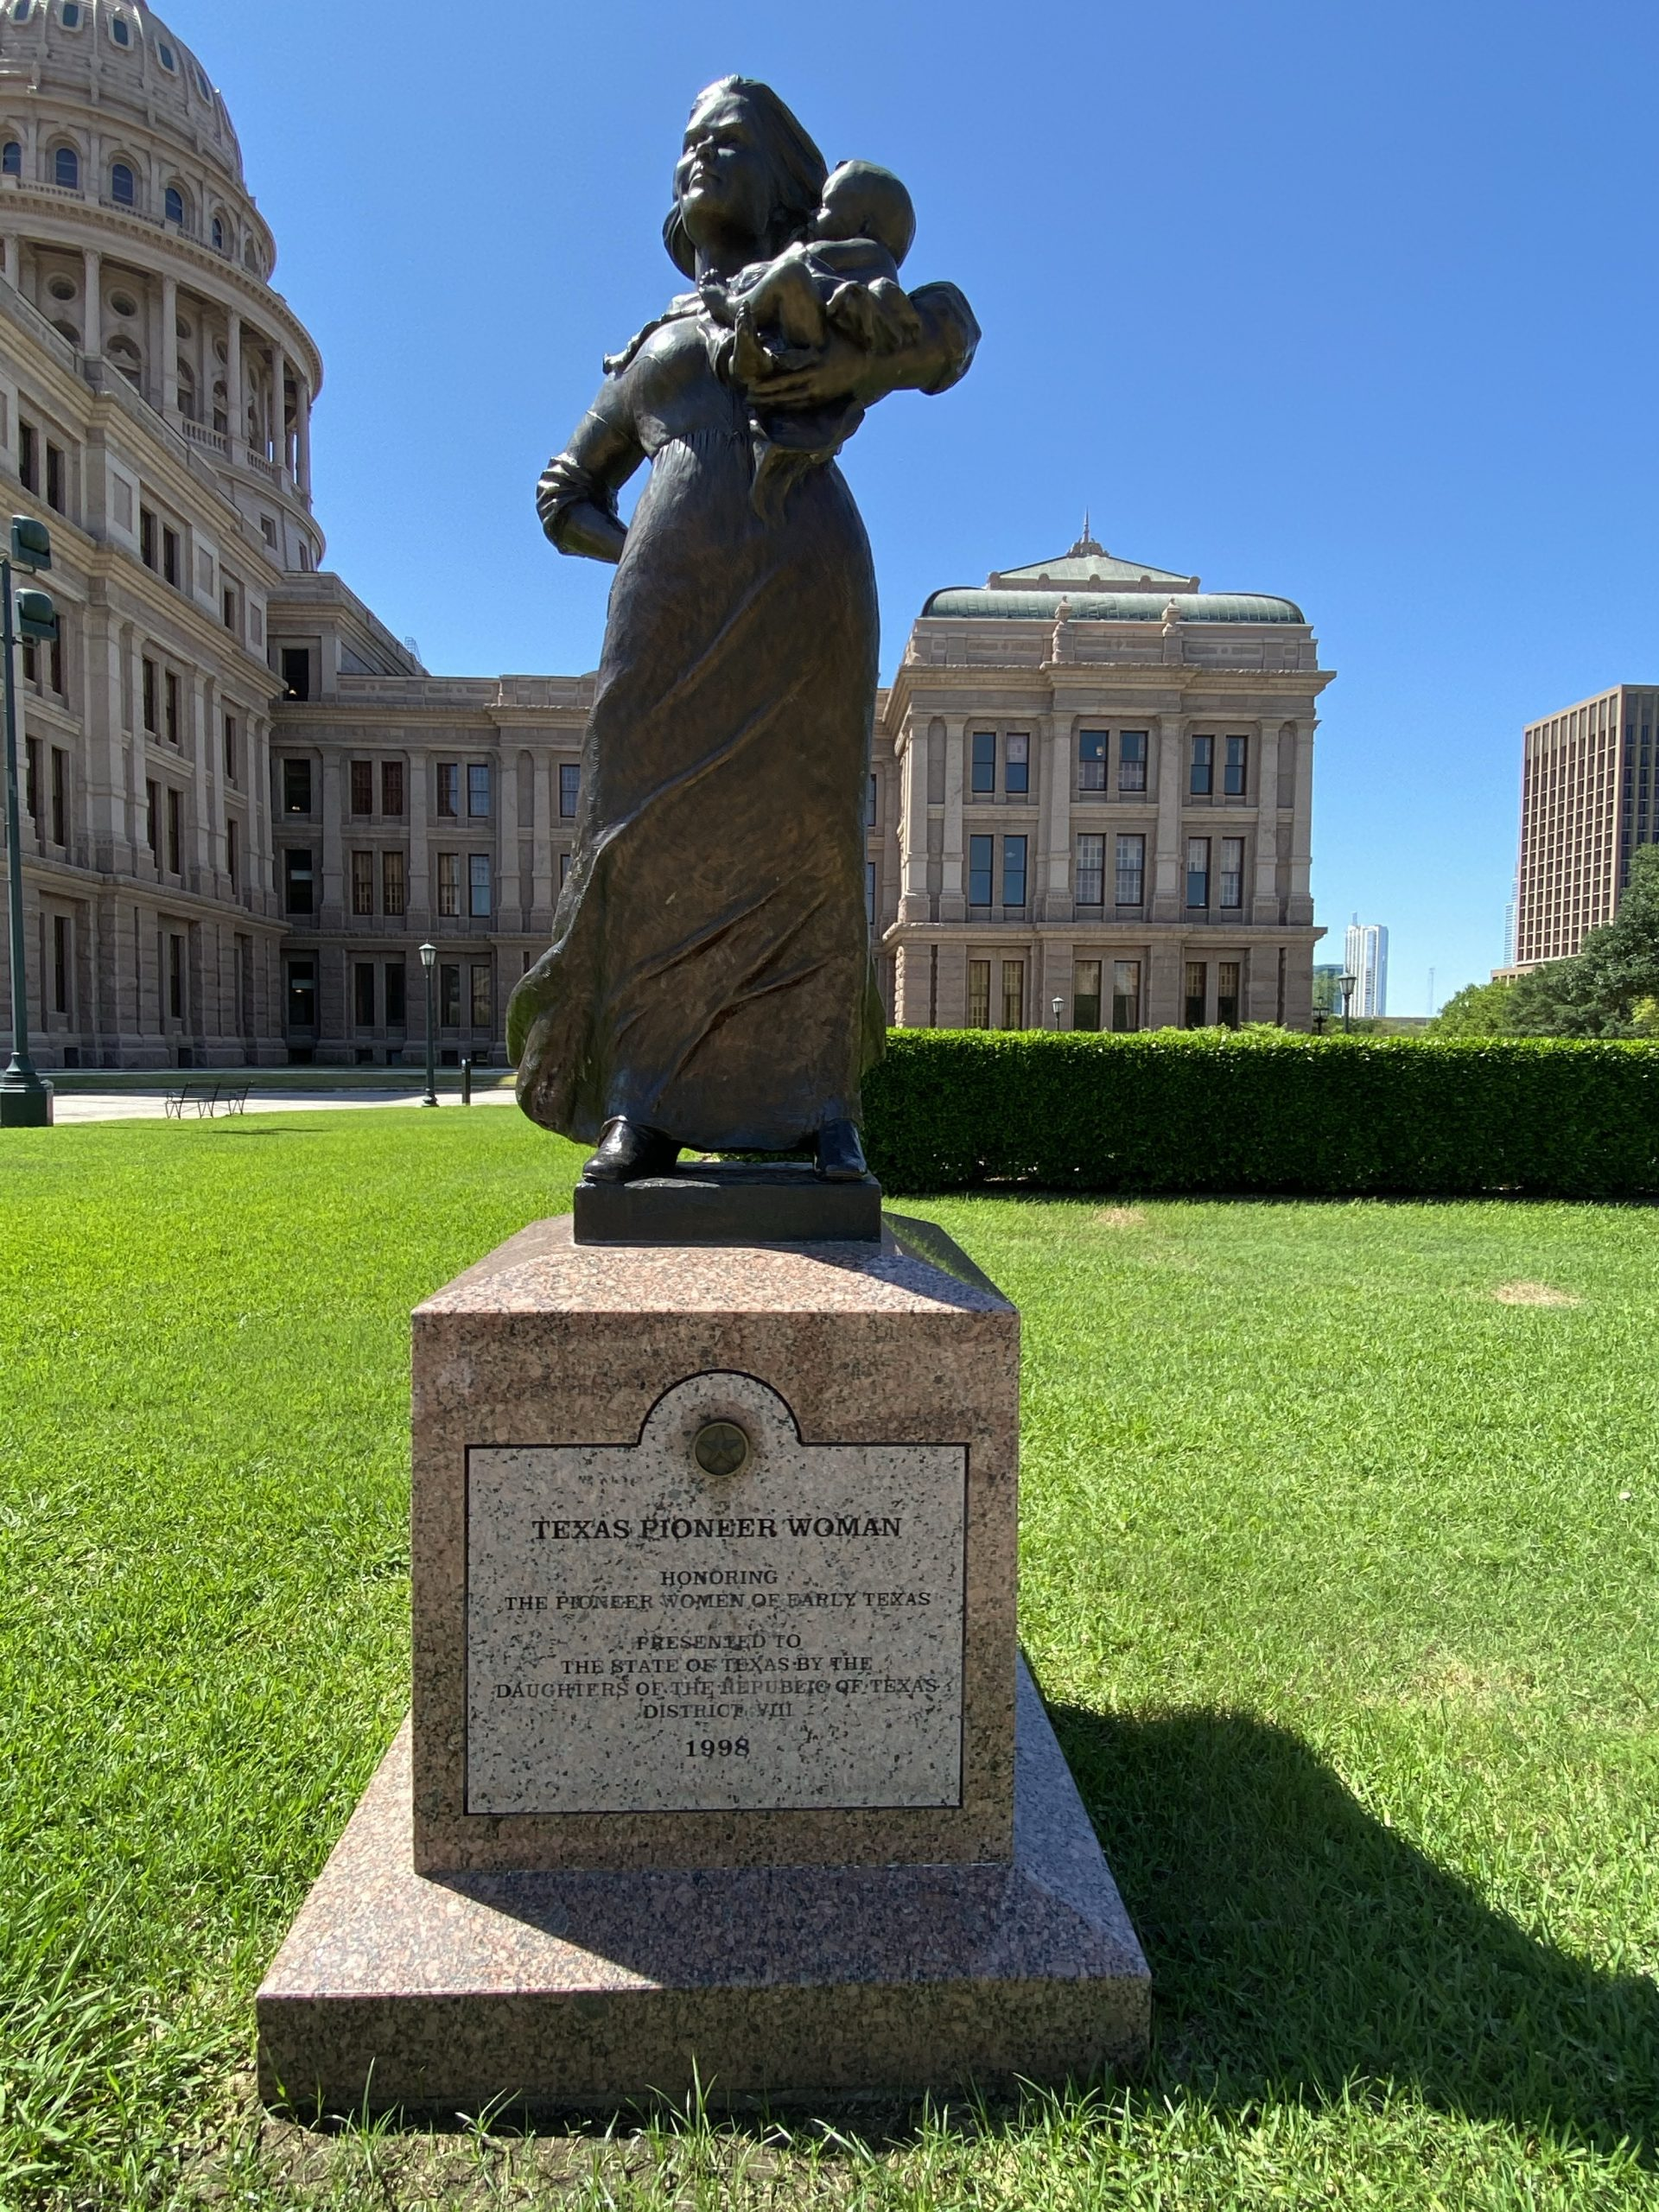 Texas Pioneer Woman sculpture at Texas Capitol